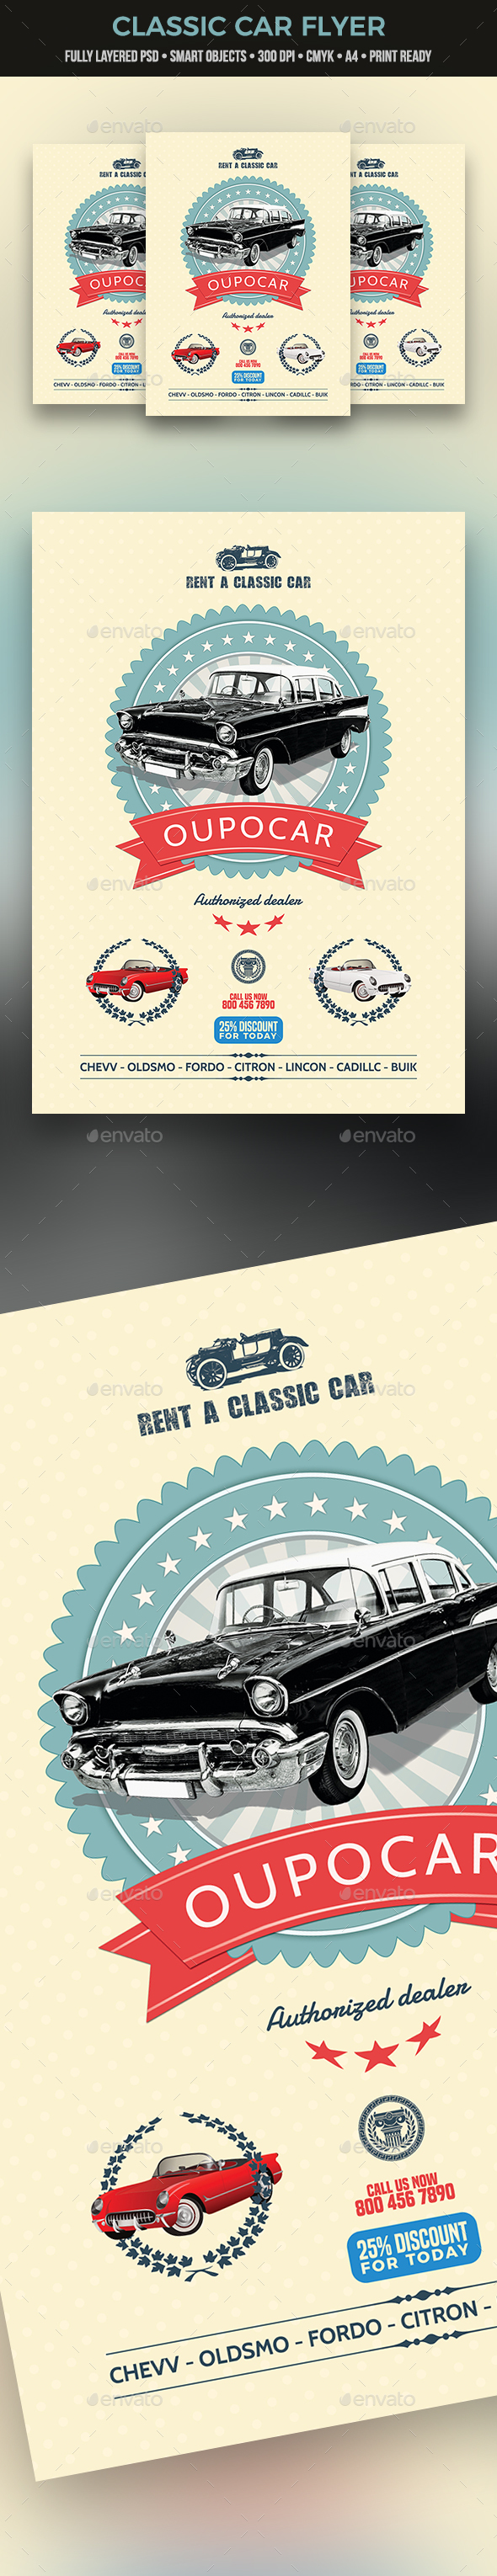 Classic Car Flyer - Commerce Flyers